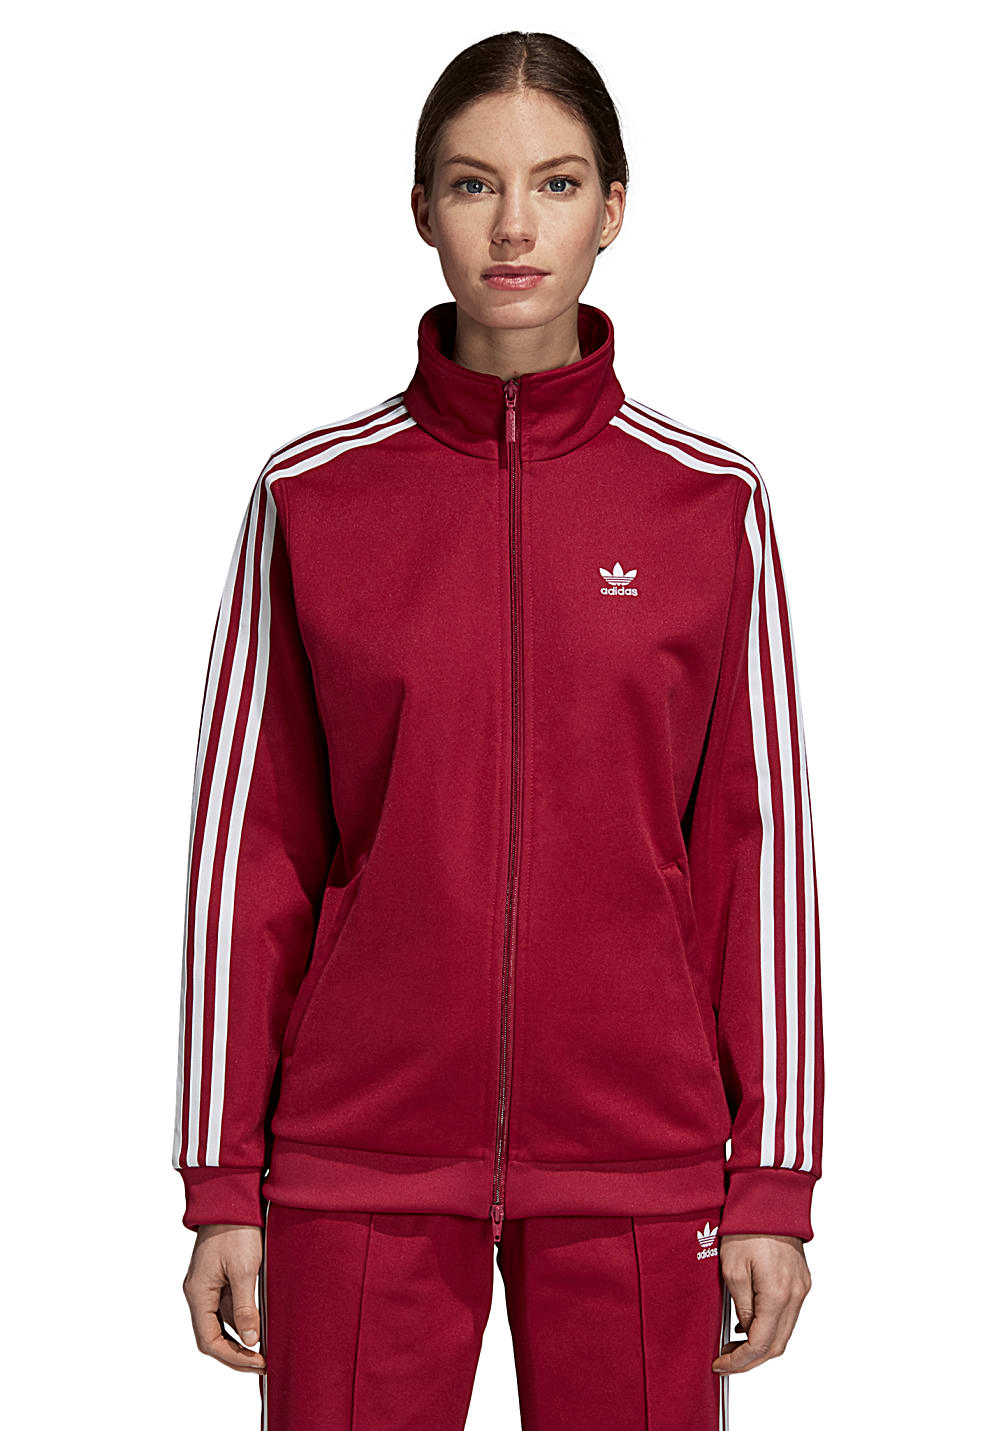 genuine shoes order preview of adidas Originals Contemp Bb - Trainingsjacke für Damen - Rot